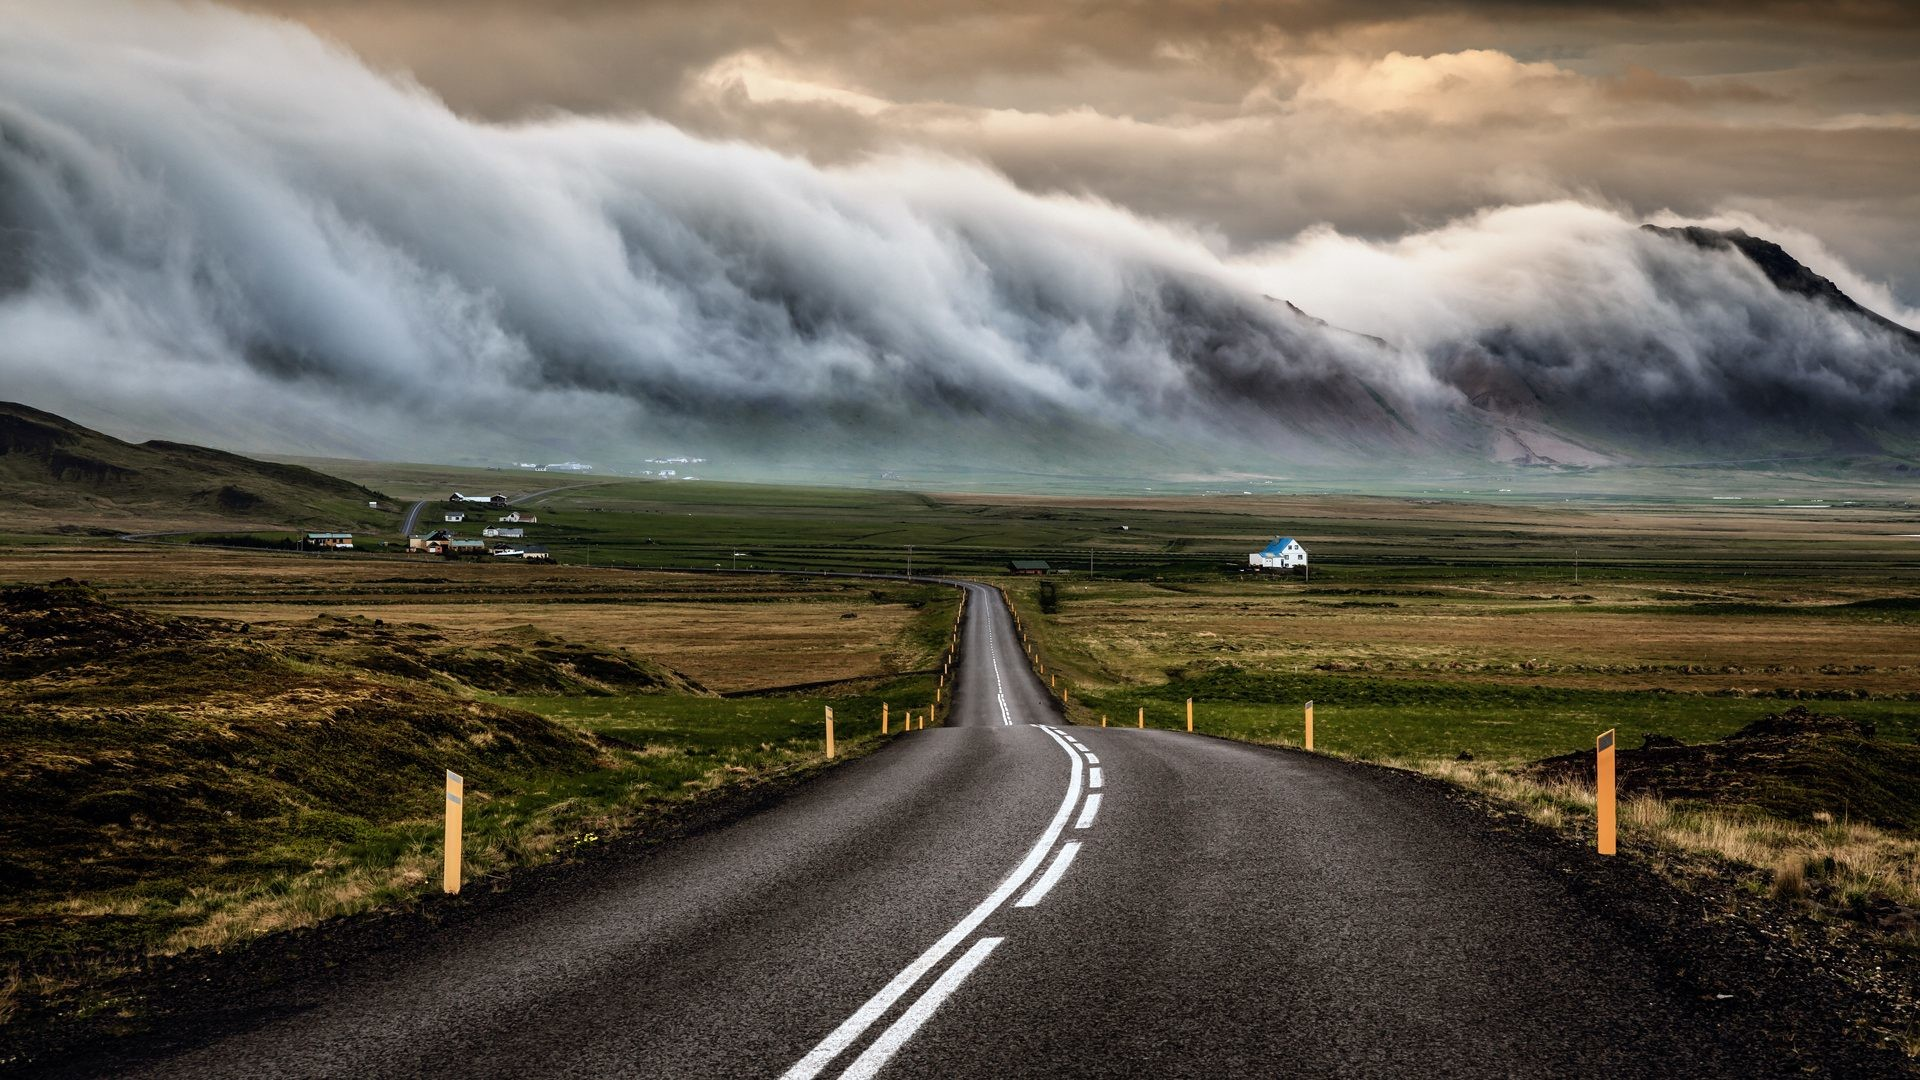 px Iceland Widescreen Image   Stunning Images, v.854